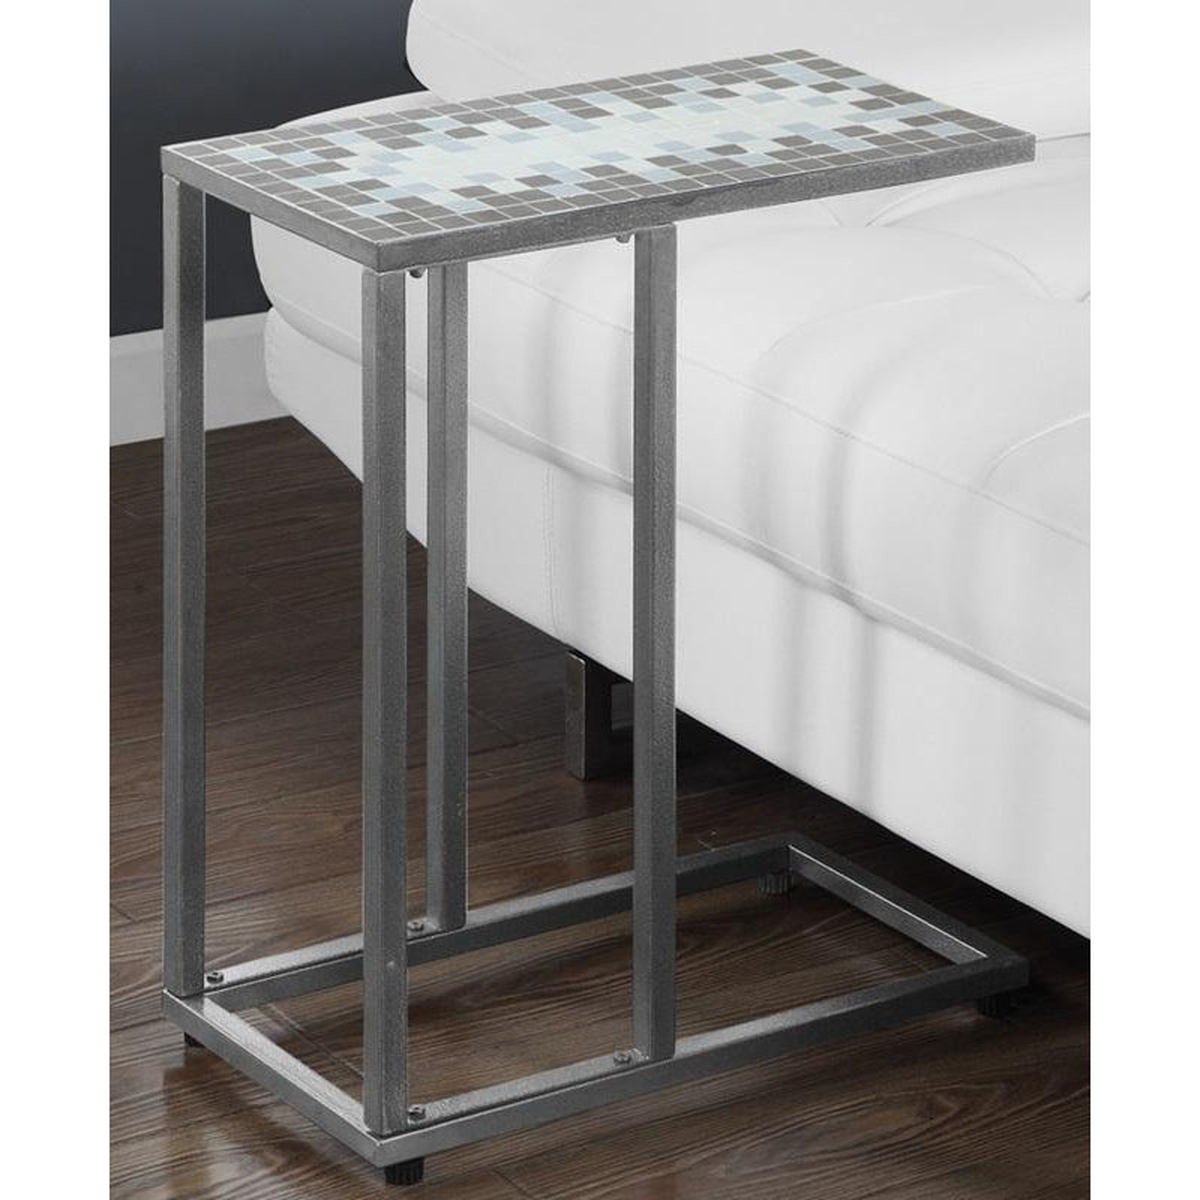 hammered metal accent table bizchair monarch specialties msp main silver our slide under sofa with gray and blue red cabinet tall small round glass top oak resin furniture cherry